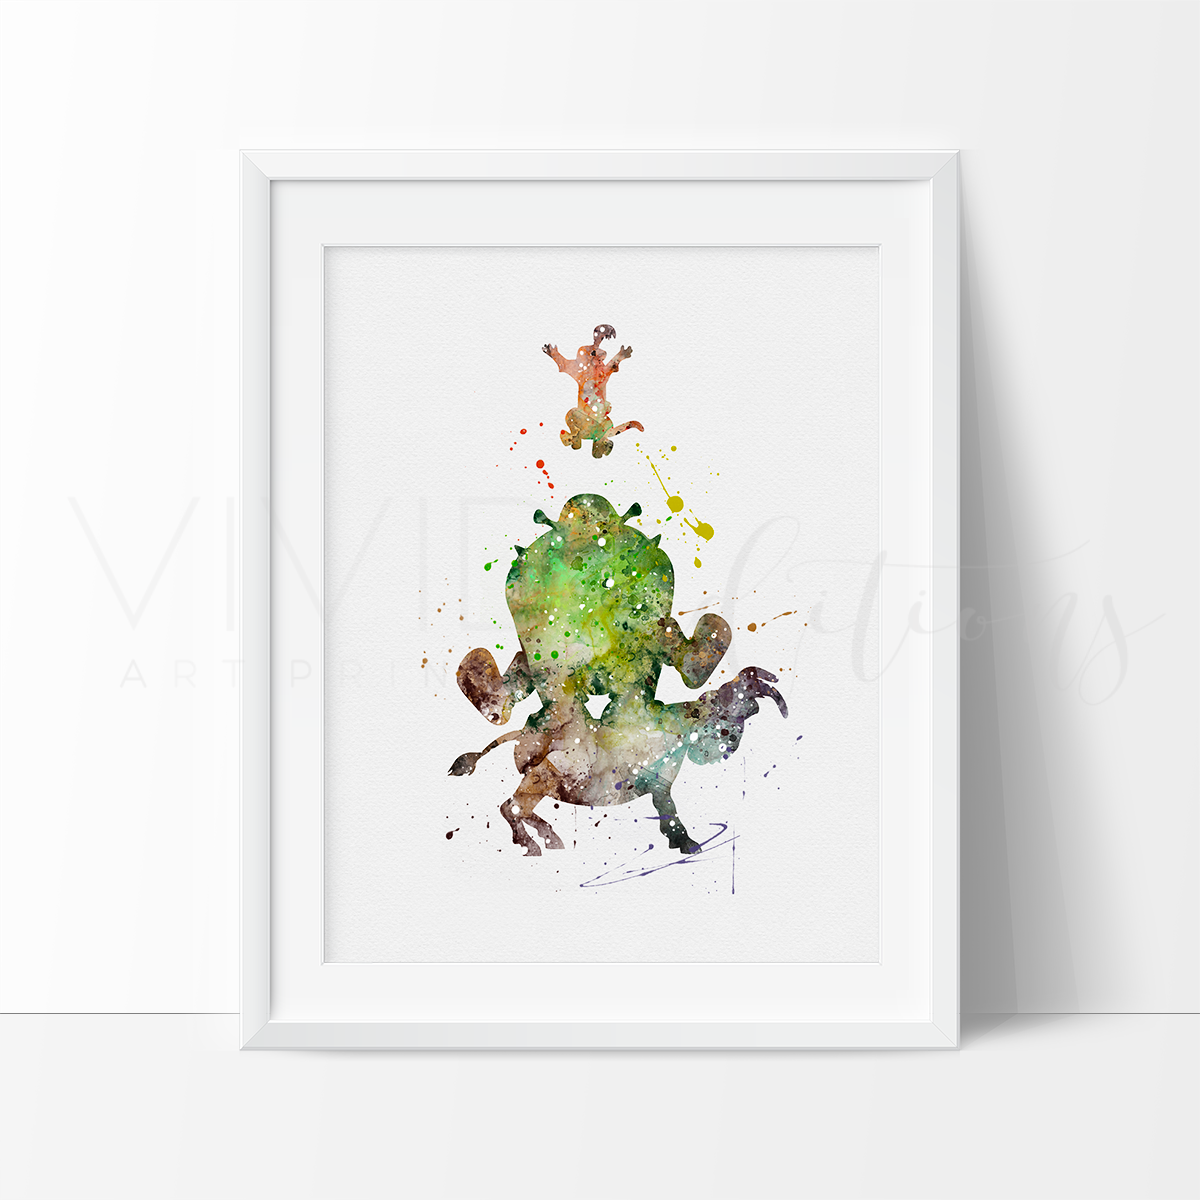 Shrek and Donkey, Puss in Boots Watercolor Art Print Art Print - VIVIDEDITIONS